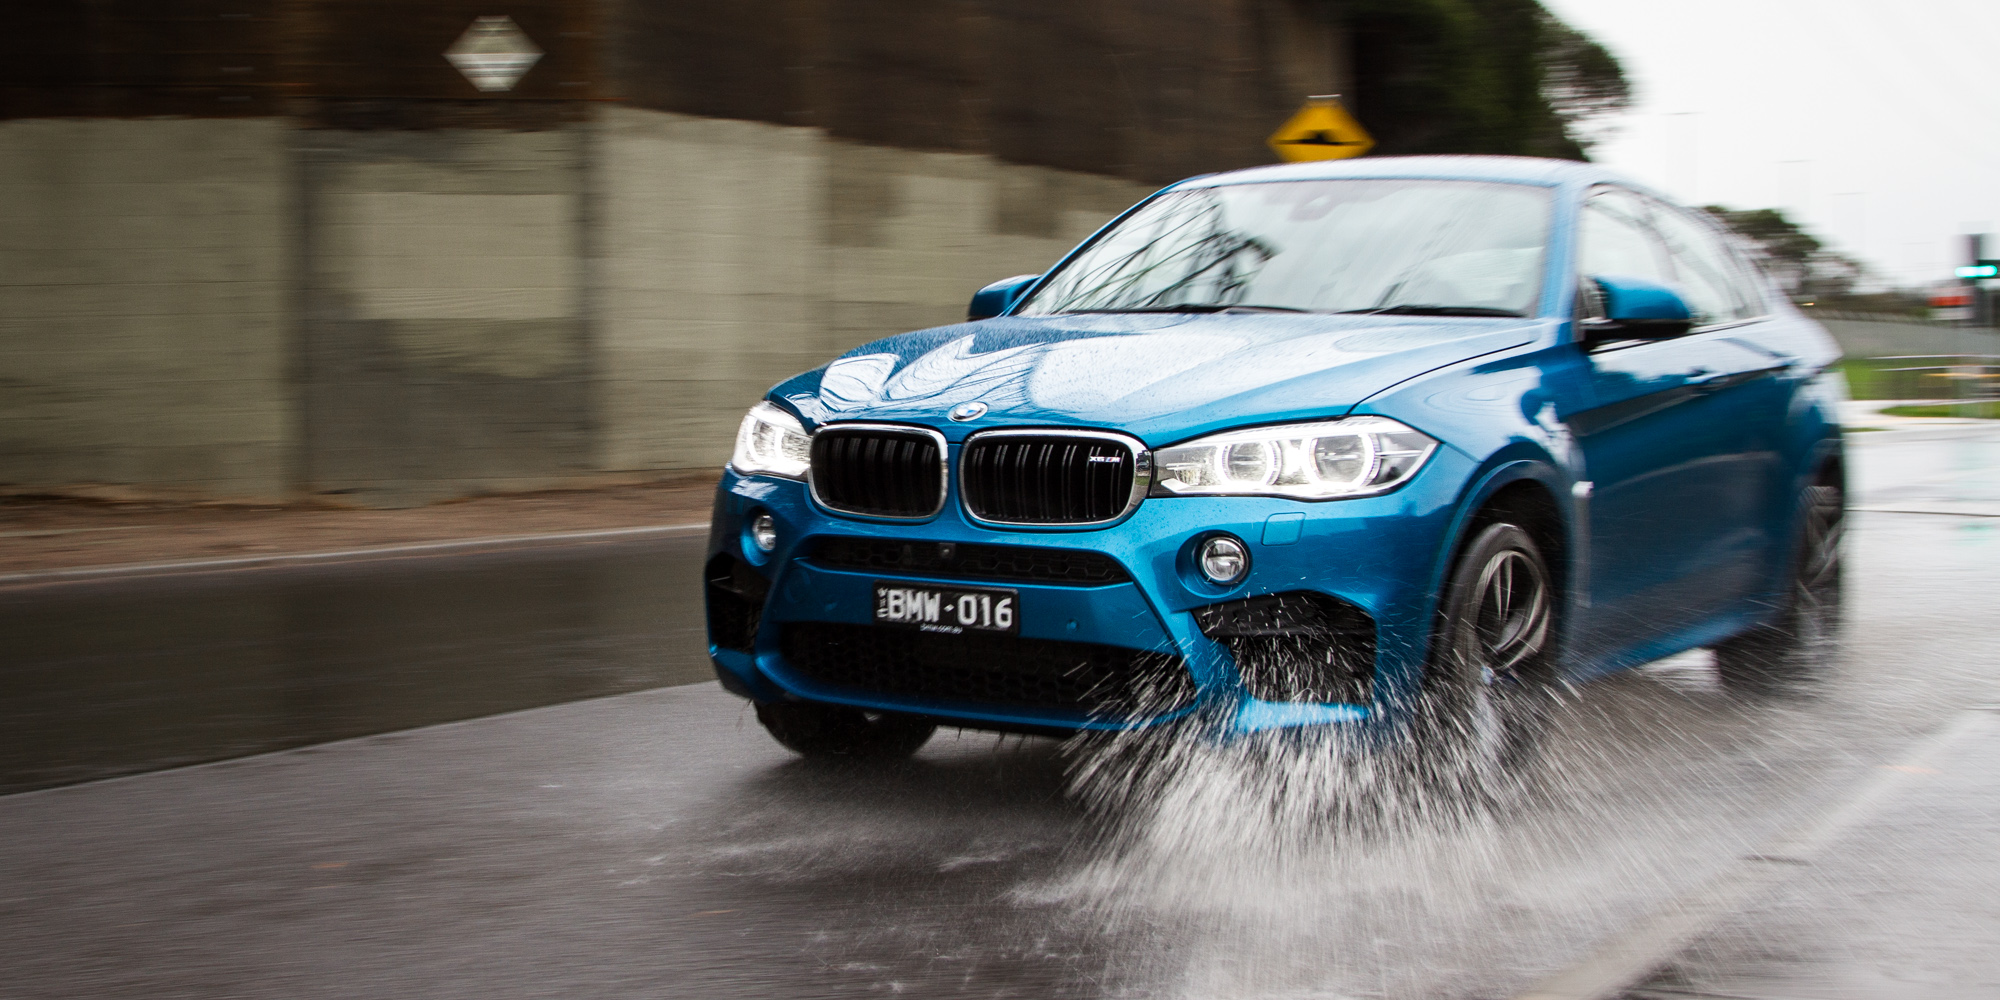 2015 Bmw X6m Review Caradvice